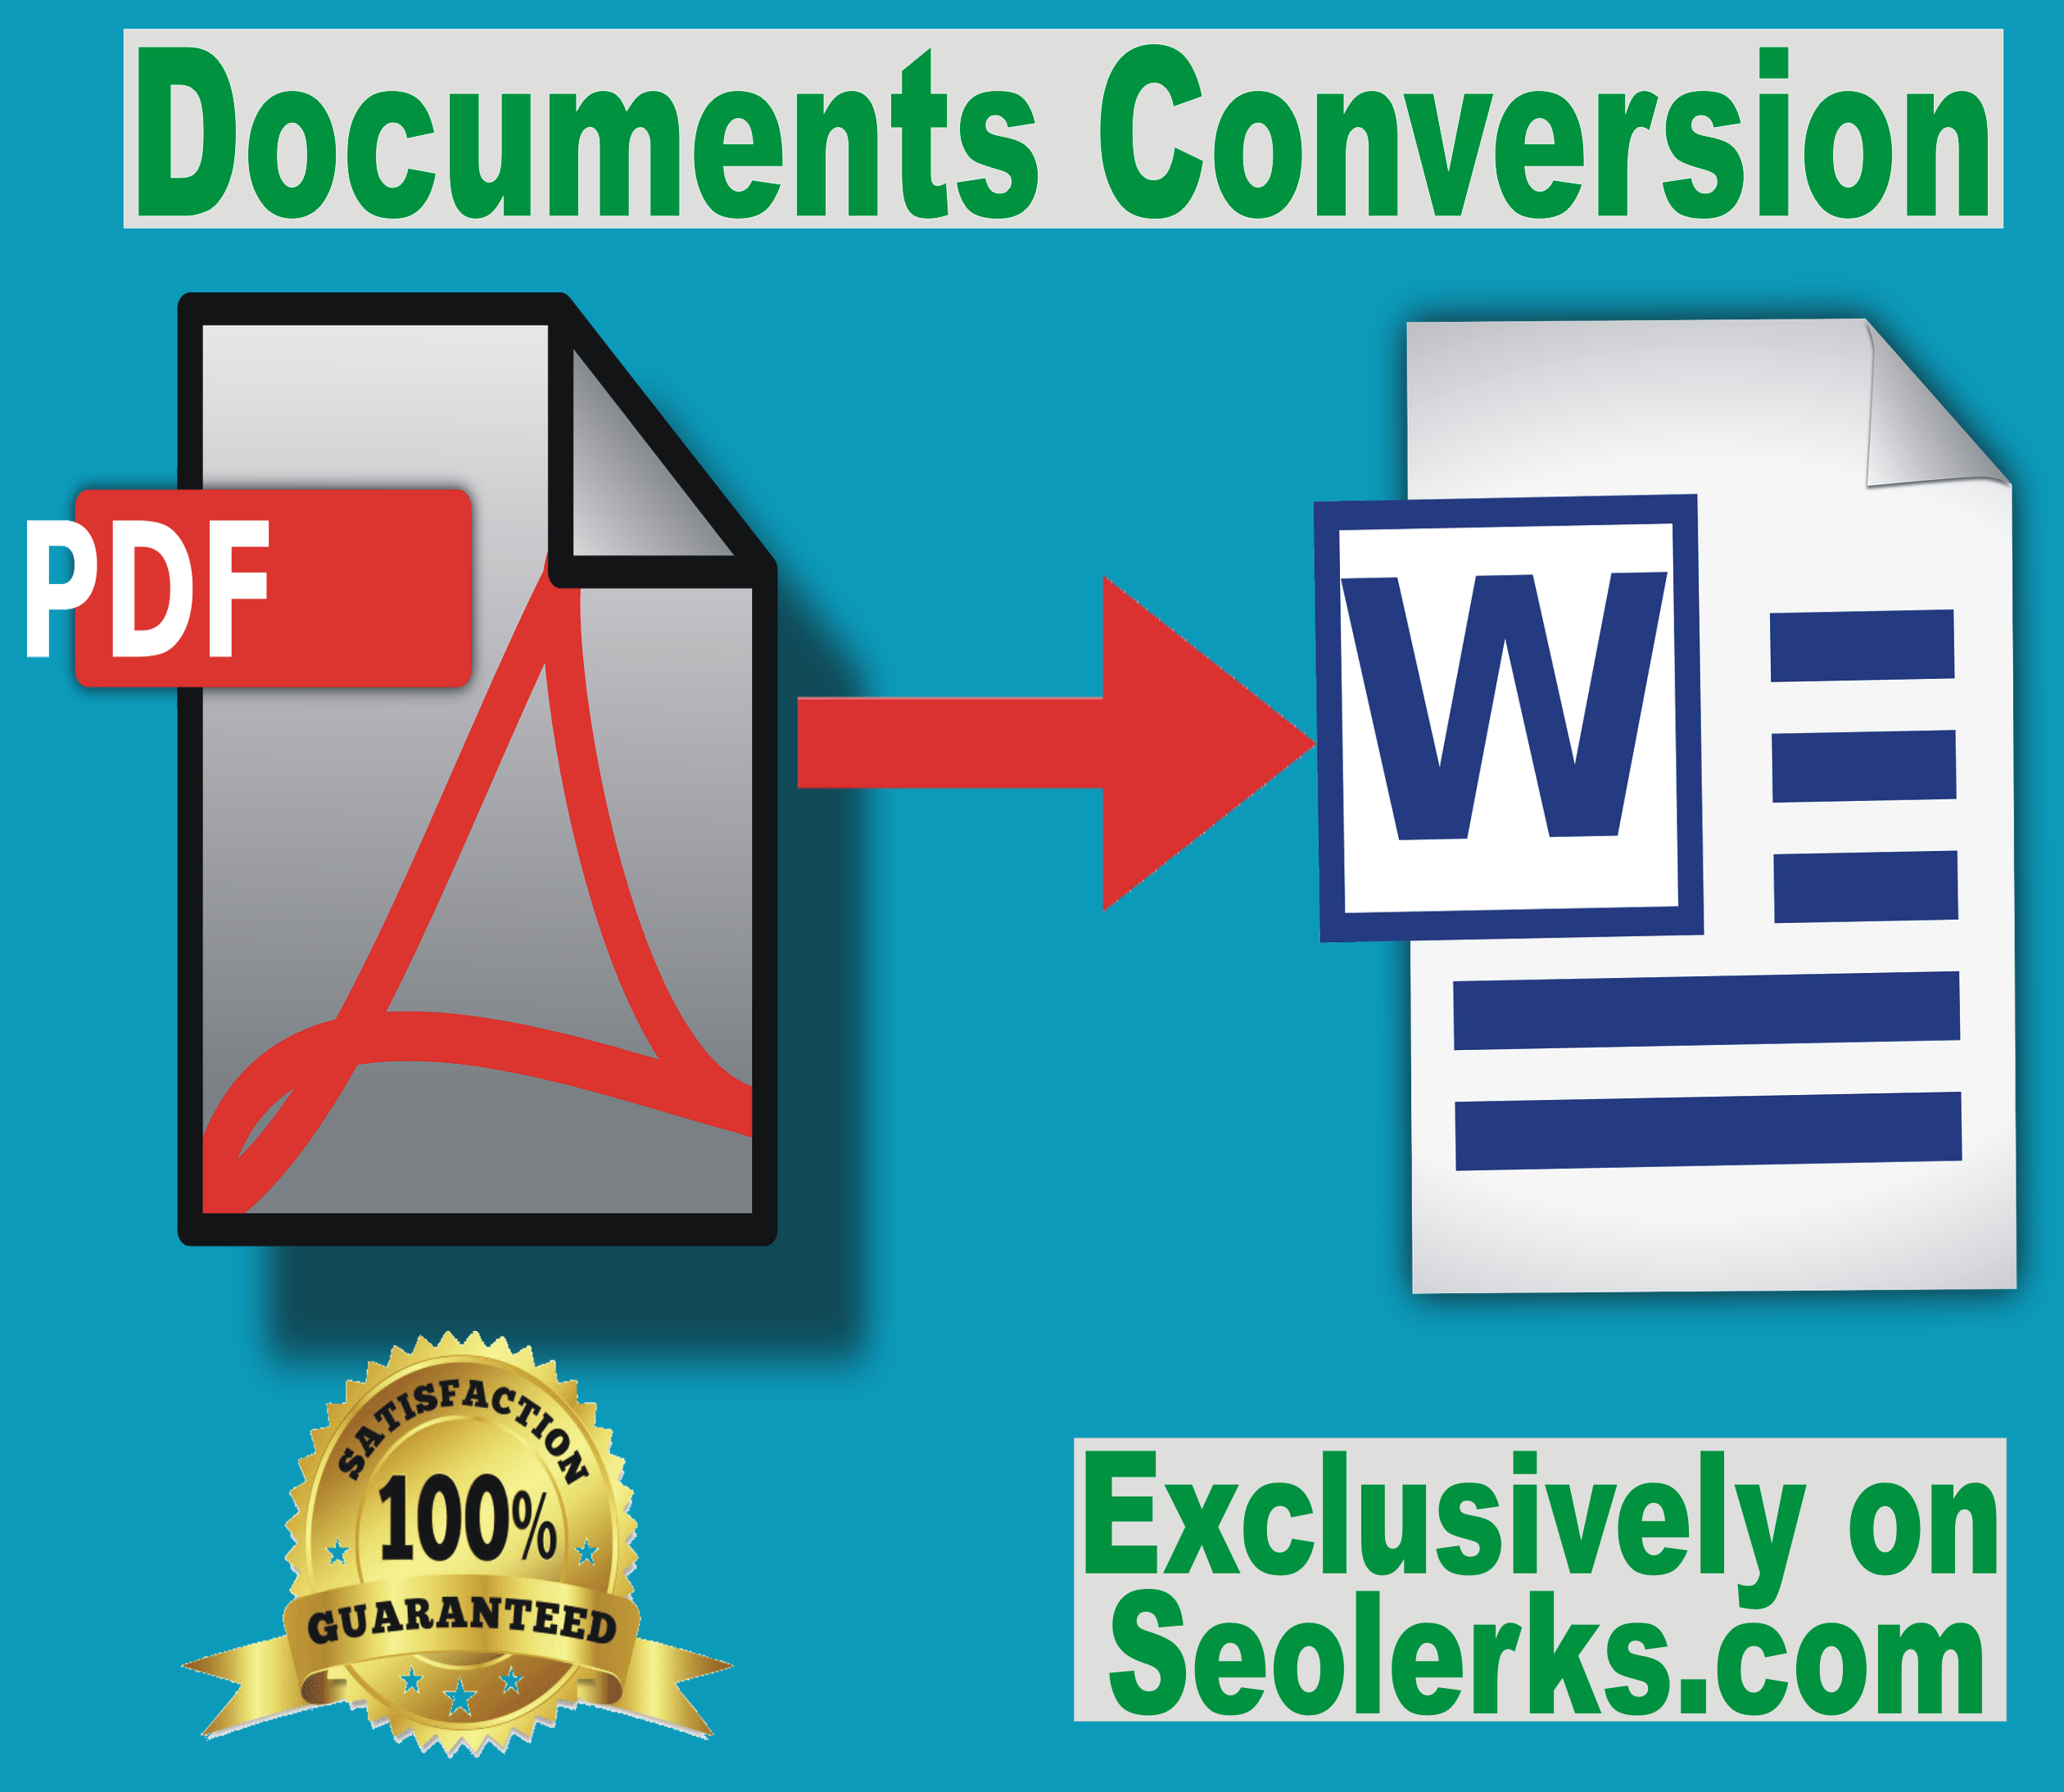 I will convert your PDF format documents to Microsoft Word format documents for $5.